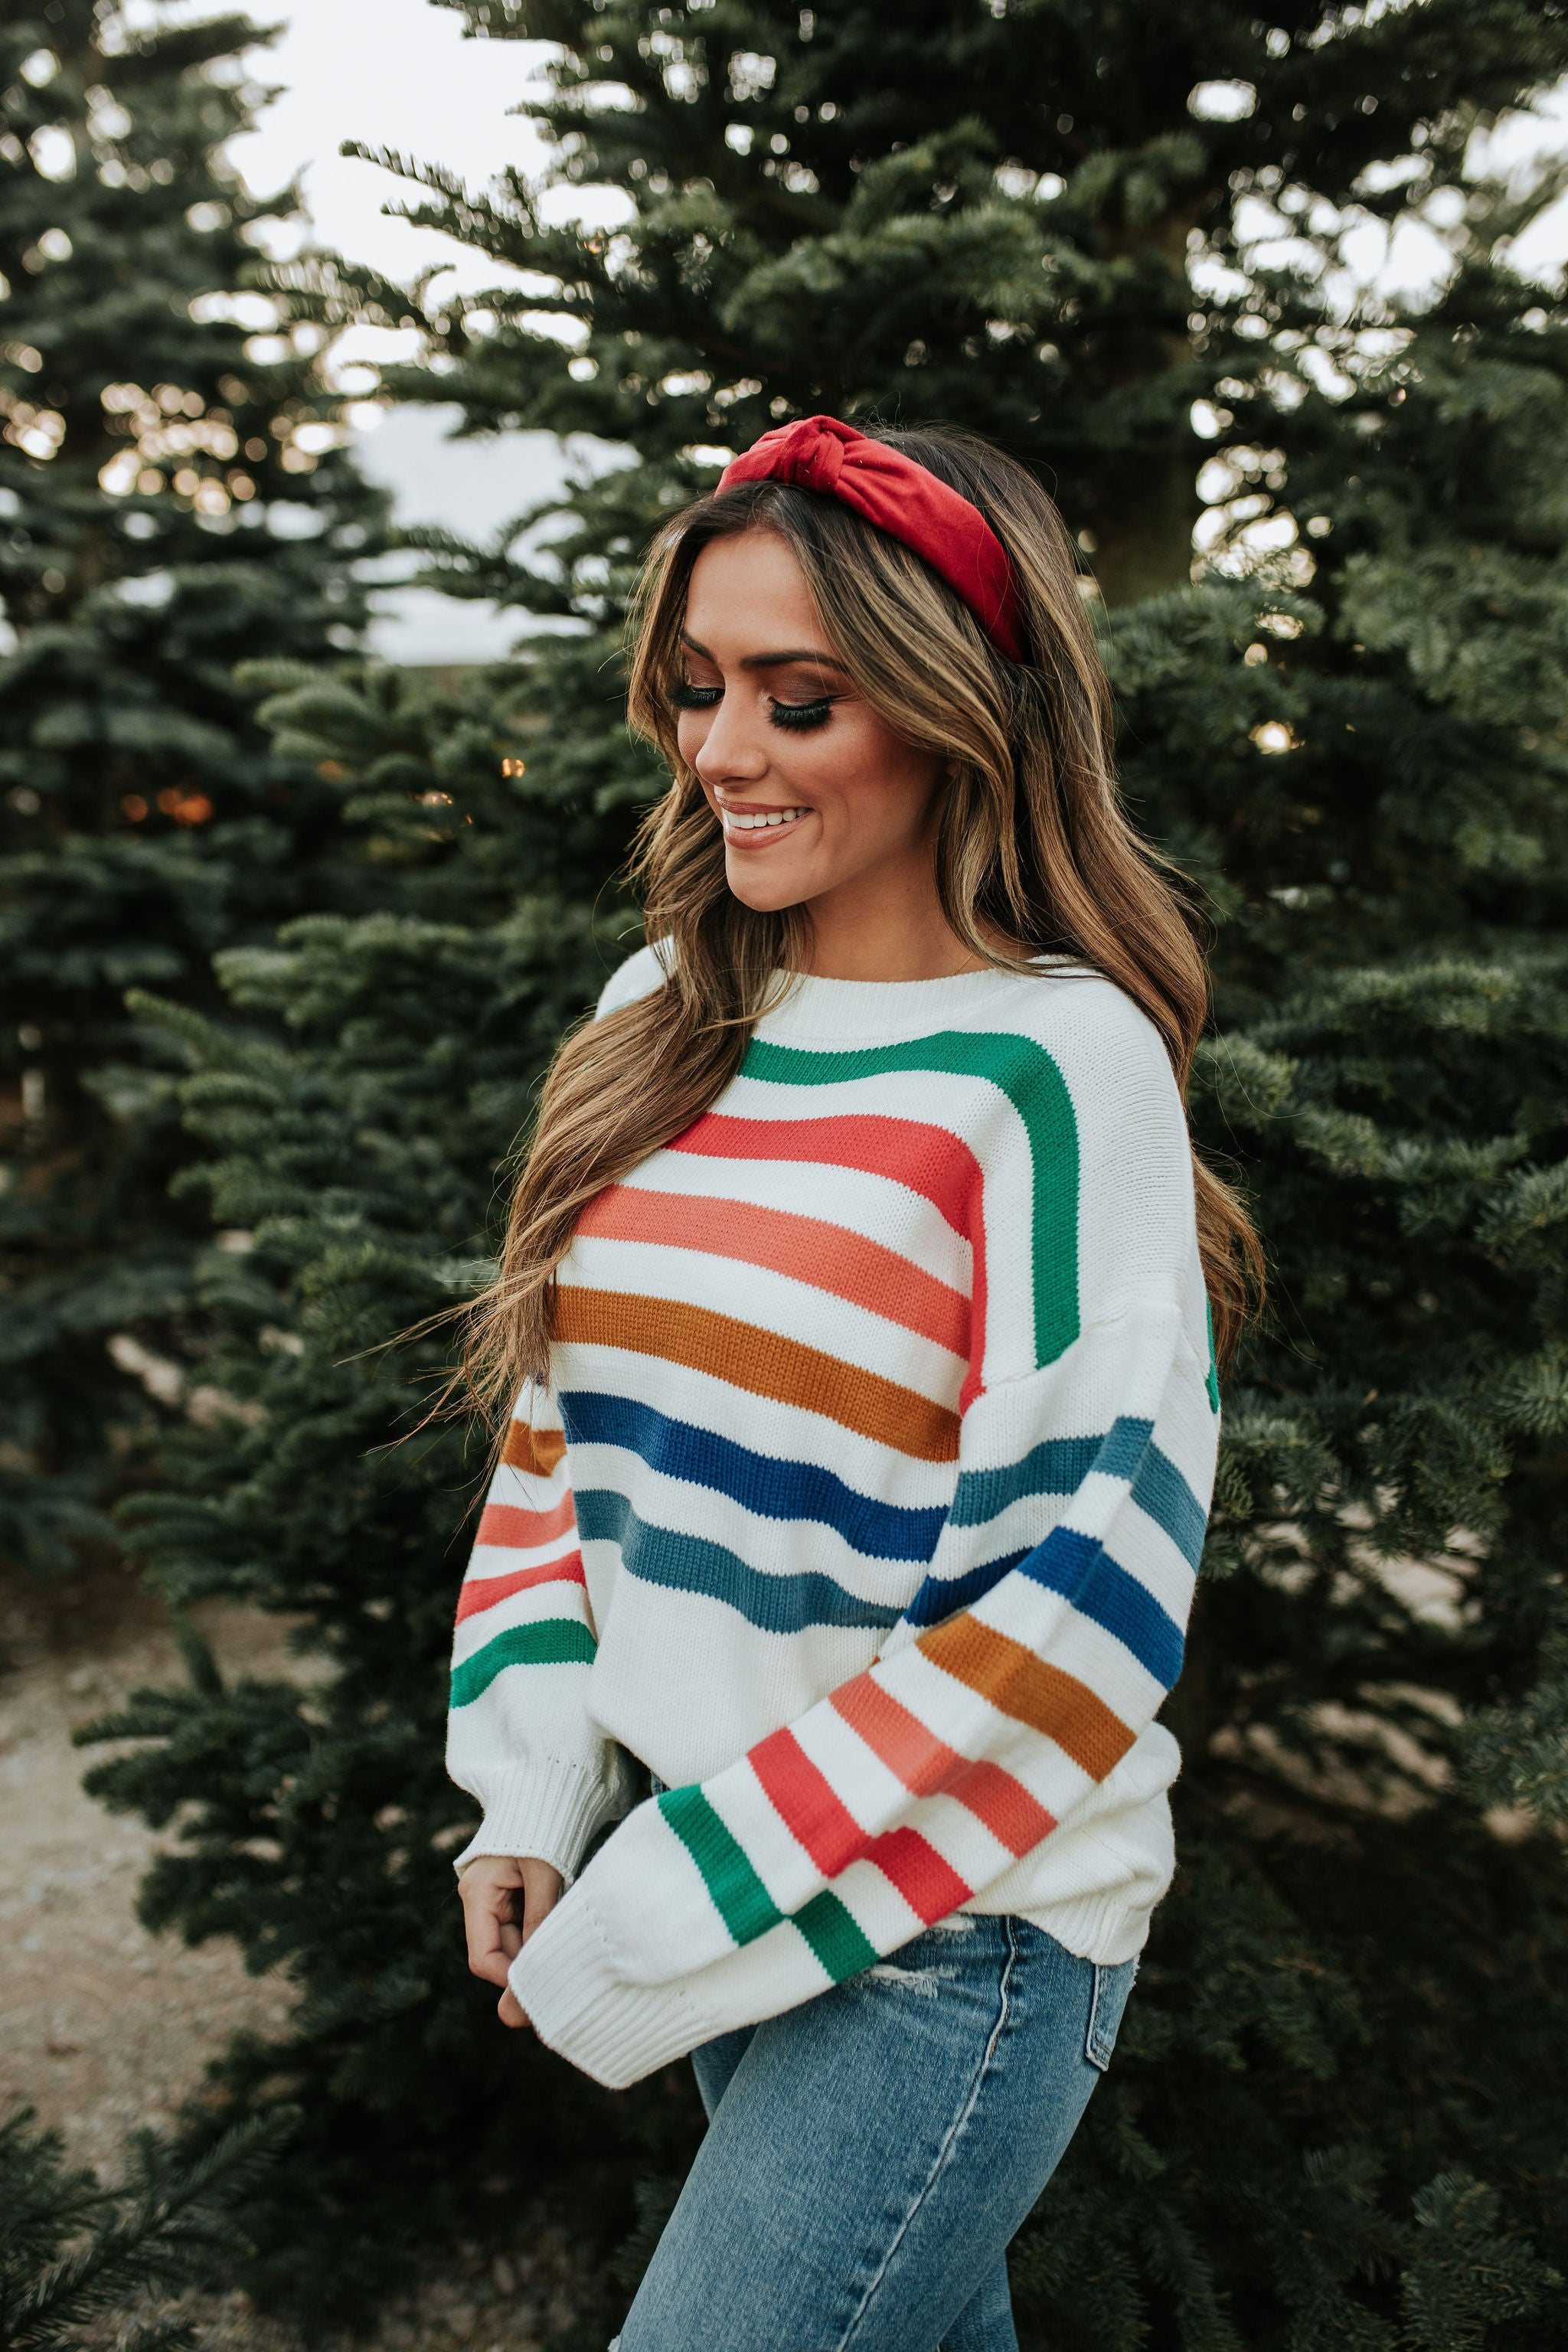 THE GRACE COLORFUL STRIPE SWEATER IN IVORY